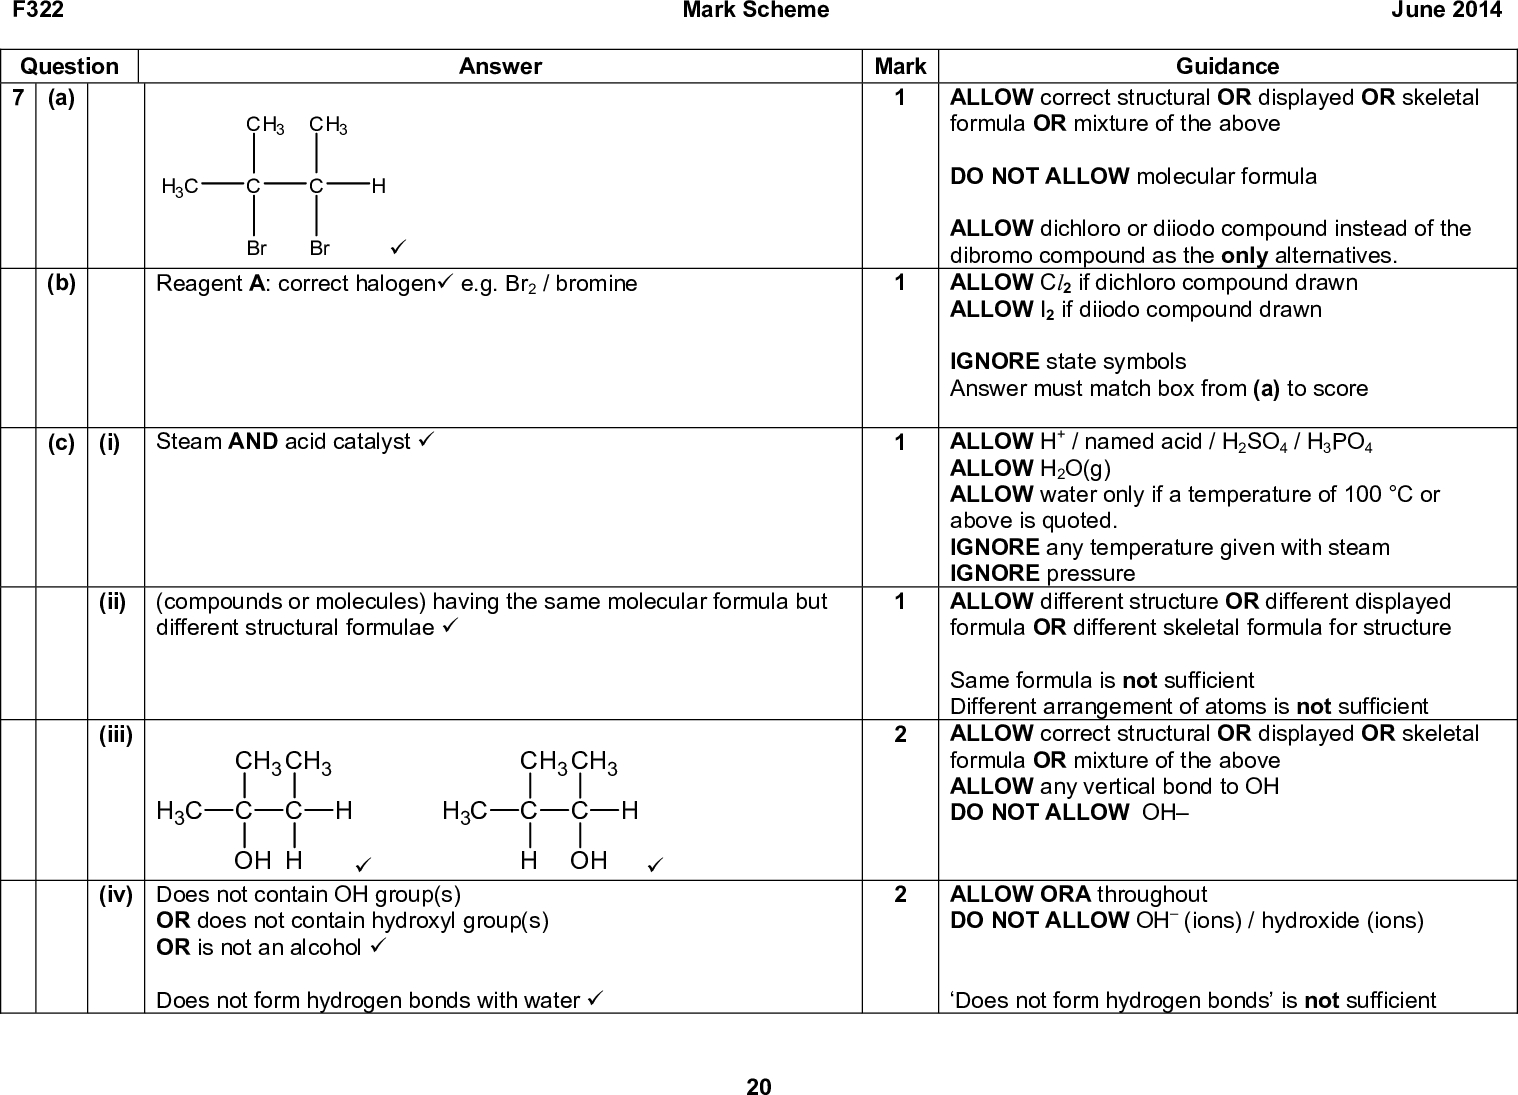 F322 Question 7 (a) Answer CH3 CH3 H3C Br Br (cid:57) (b) Reagent A: correct halogen(cid:57) e.g. Br2 / bromine (c) (i) Steam AND acid catalyst (cid:57) (ii) (compounds or molecules) having the same molecular formula but different structural formulae (cid:57) (iii) CH3 CH3 CH3 C C OH H (iv) Does not contain OH group(s) (cid:57) CH3 CH3 CH3 C C H OH (cid:57) OR does not contain hydroxyl group(s) OR is not an alcohol (cid:57) Does not form hydrogen bonds with water (cid:57) 20 Mark Scheme June 2014 Mark 1 Guidance ALLOW correct structural OR displayed OR skeletal formula OR mixture of the above DO NOT ALLOW molecular formula ALLOW dichloro or diiodo compound instead of the dibromo compound as the only alternatives. ALLOW Cl2 if dichloro compound drawn ALLOW I2 if diiodo compound drawn IGNORE state symbols Answer must match box from (a) to score ALLOW H+ / named acid / H2SO4 / H3PO4 ALLOW H2O(g) ALLOW water only if a temperature of 100 C or above is quoted. IGNORE any temperature given with steam IGNORE pressure ALLOW different structure OR different displayed formula OR different skeletal formula for structure Same formula is not sufficient Different arrangement of atoms is not sufficient ALLOW correct structural OR displayed OR skeletal formula OR mixture of the above ALLOW any vertical bond to OH DO NOT ALLOW OH ALLOW ORA throughout DO NOT ALLOW OH (ions) / hydroxide (ions) Does not form hydrogen bonds is not sufficient<br />  F322 Mark Scheme June 2014 Mark 6 Answer 2- Reagents: Acid/H+ and (potassium or sodium) dichromate/Cr2O7 seen once(cid:57) Observations: Orange to Green OR Orange to Blue(cid:57) Distillation / Distil produces aldehyde/CH3CH2CHO: (cid:57) CH3CH2CH2OH + [O] CH3CH2CHO + H2O (cid:57) Reflux (of propan-1-ol) produces carboxylic acid/CH3CH2COOH(cid:57) CH3CH2CH2OH + 2[O] CH3CH2COOH + H2O (cid:57) Guidance ANNOTATE ANSWER WITH TICKS AND CROSSES ETC ALLOW H2SO4 and K2Cr2O7 ALLOW correct displayed formula OR correct structural formula OR skeletal form